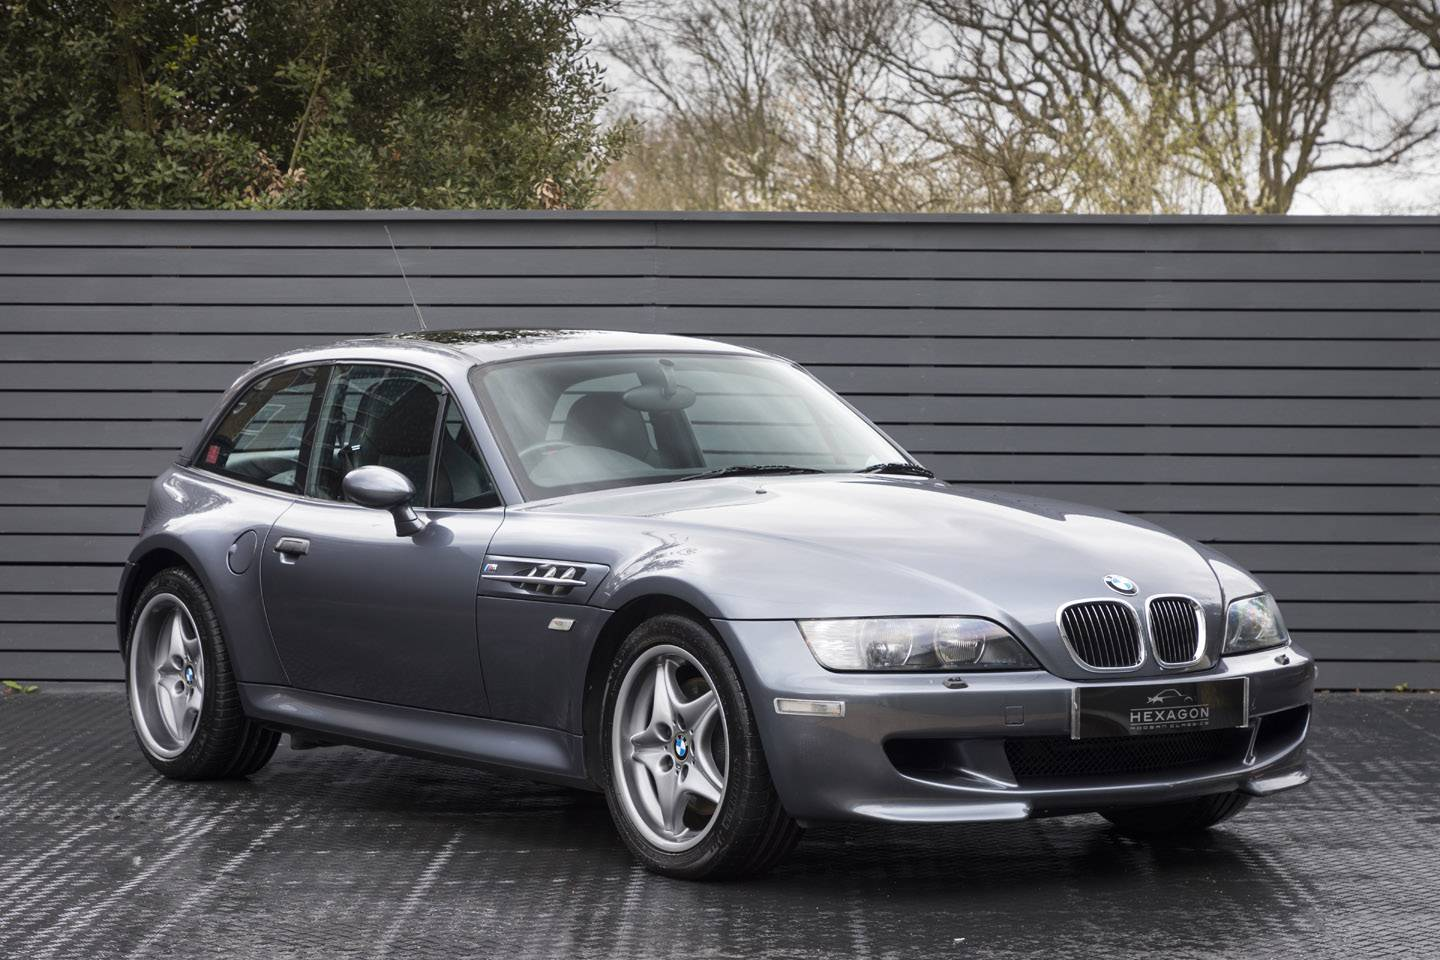 For Sale Bmw Z3 M Coupe 2002 Offered For Gbp 54 995